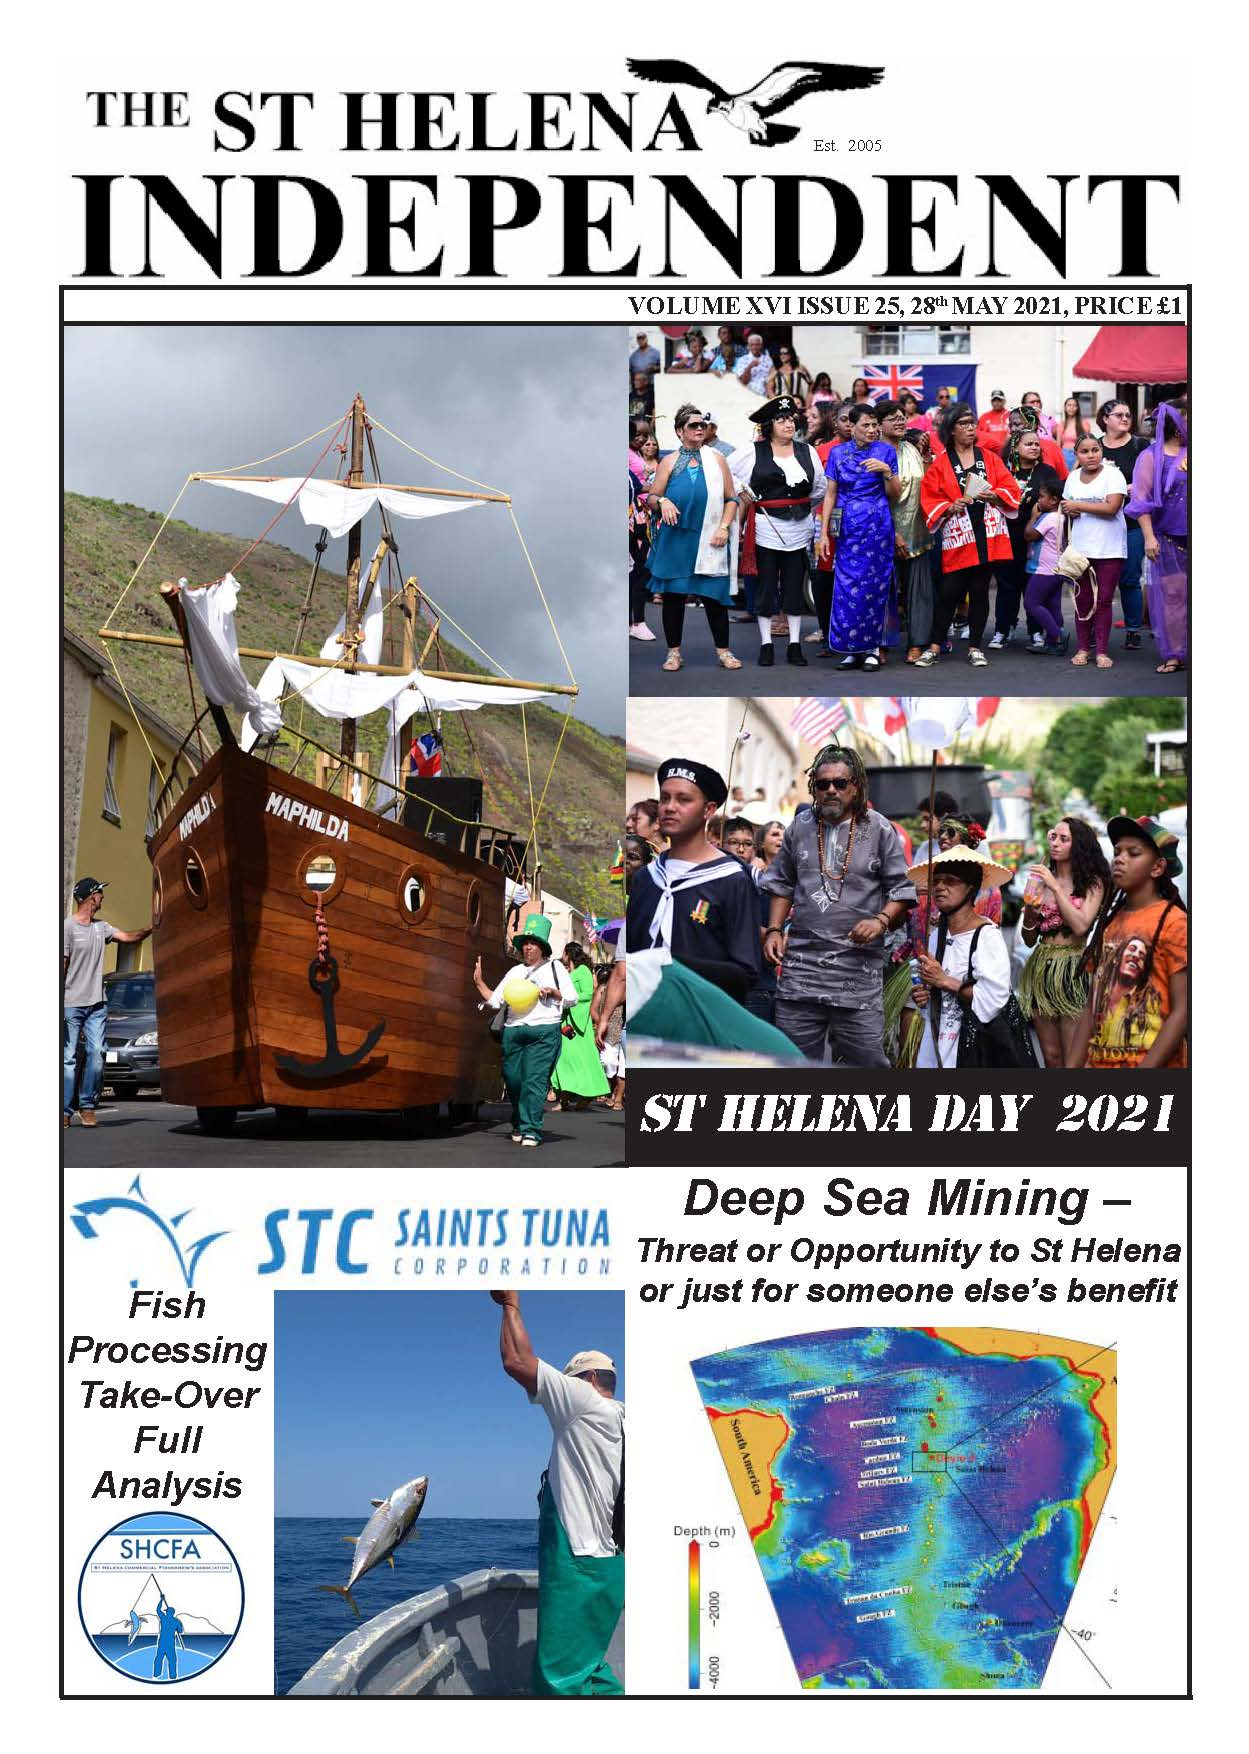 St Helena Independent 20210528 p1